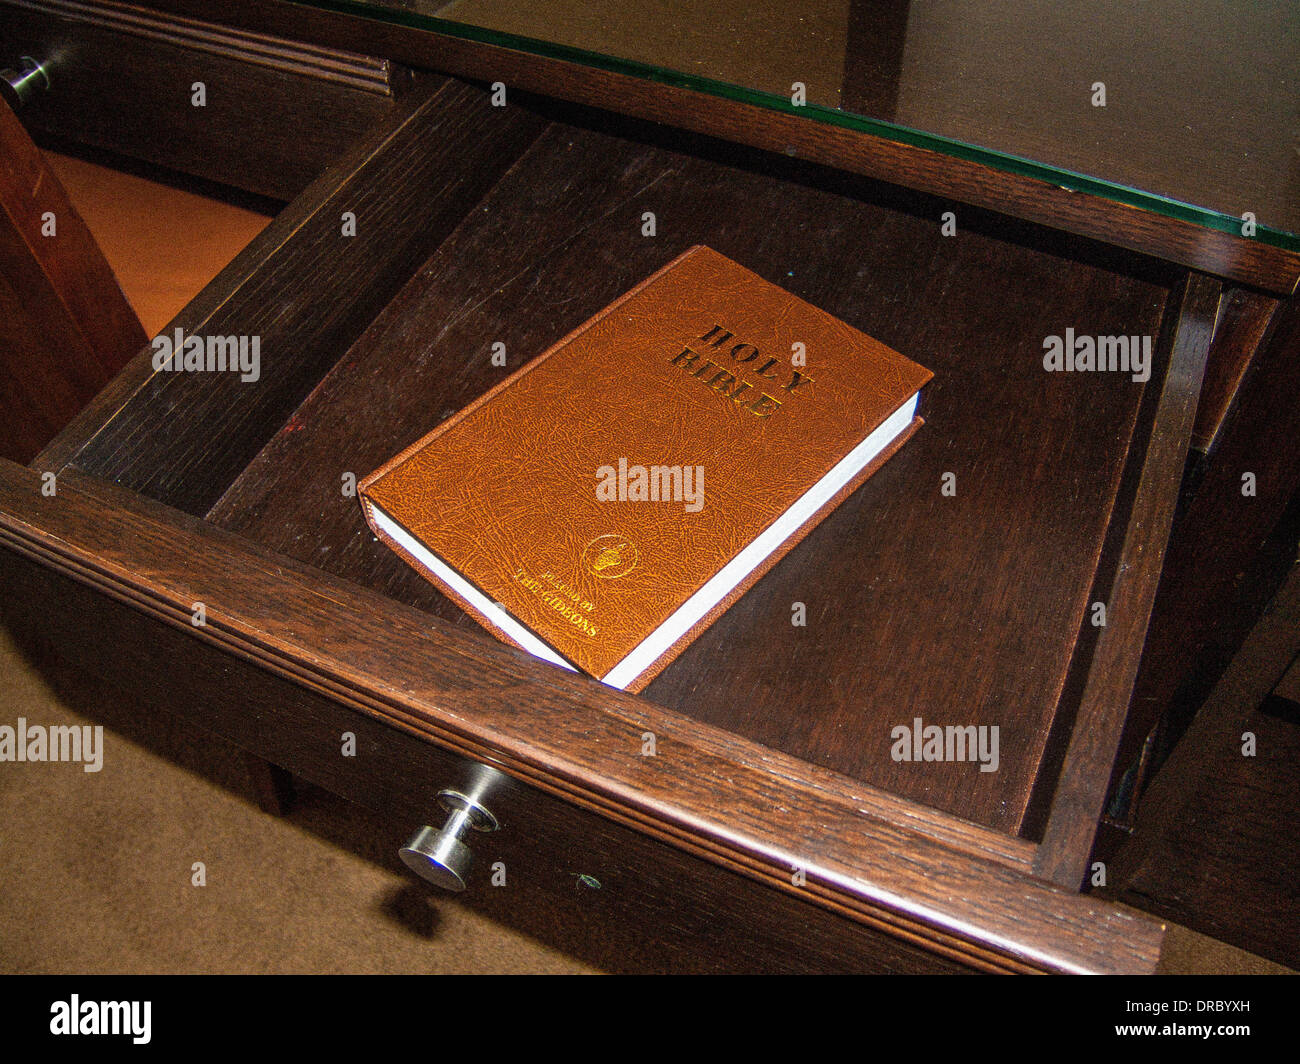 Hotel room drawer with Holy Bible - Stock Image